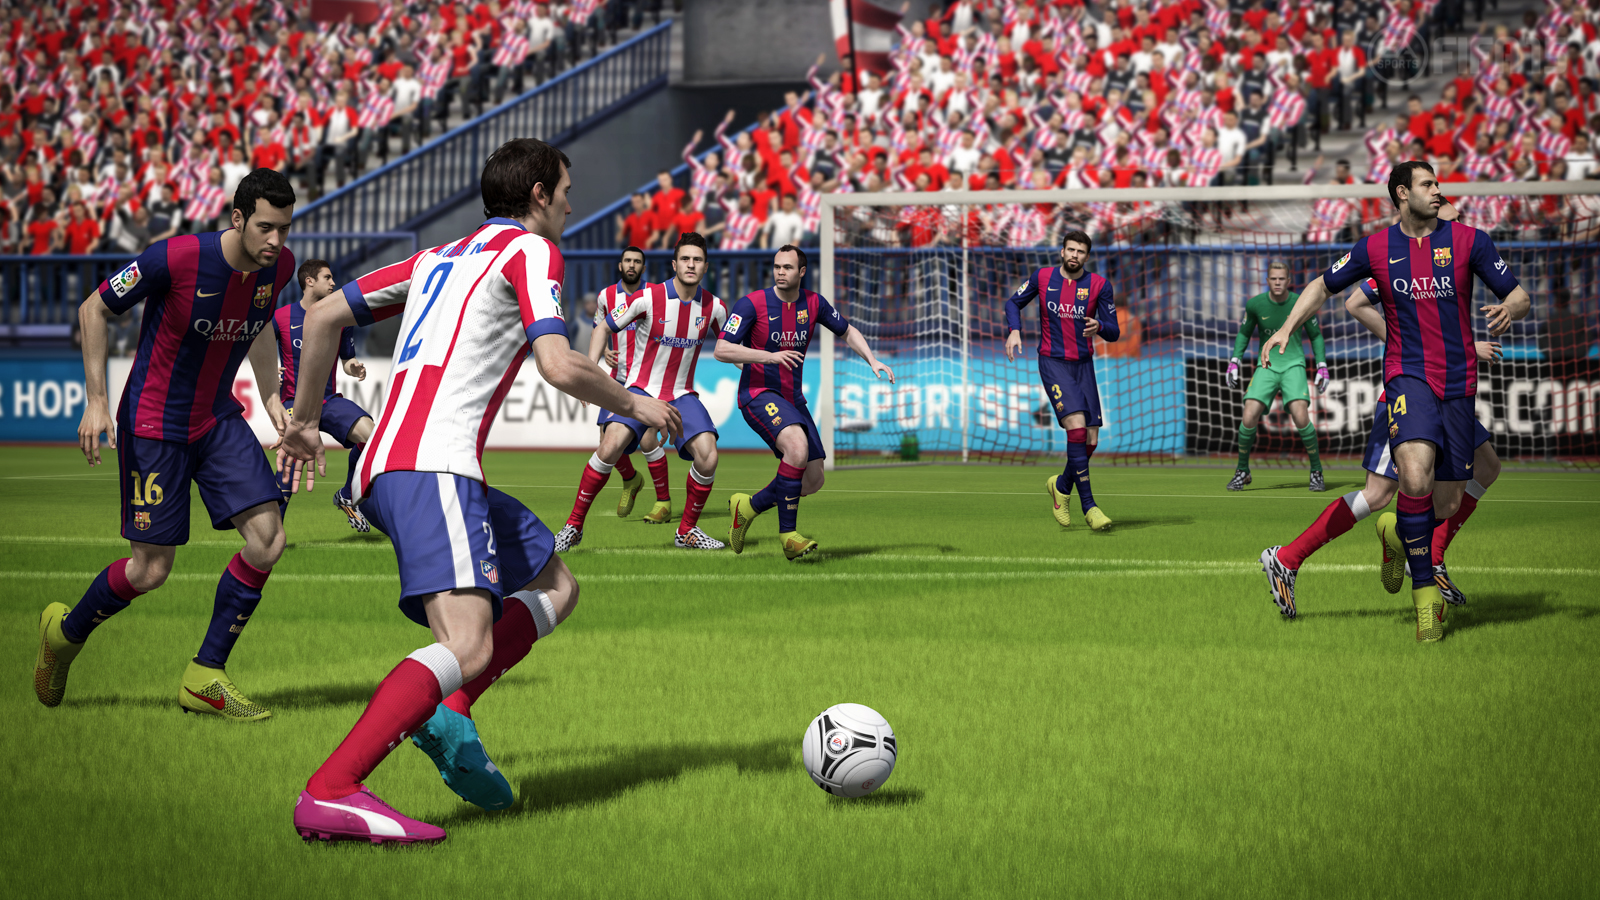 FIFA 15 demo out now on PC, PlayStation, Xbox 360 – PC specs ...